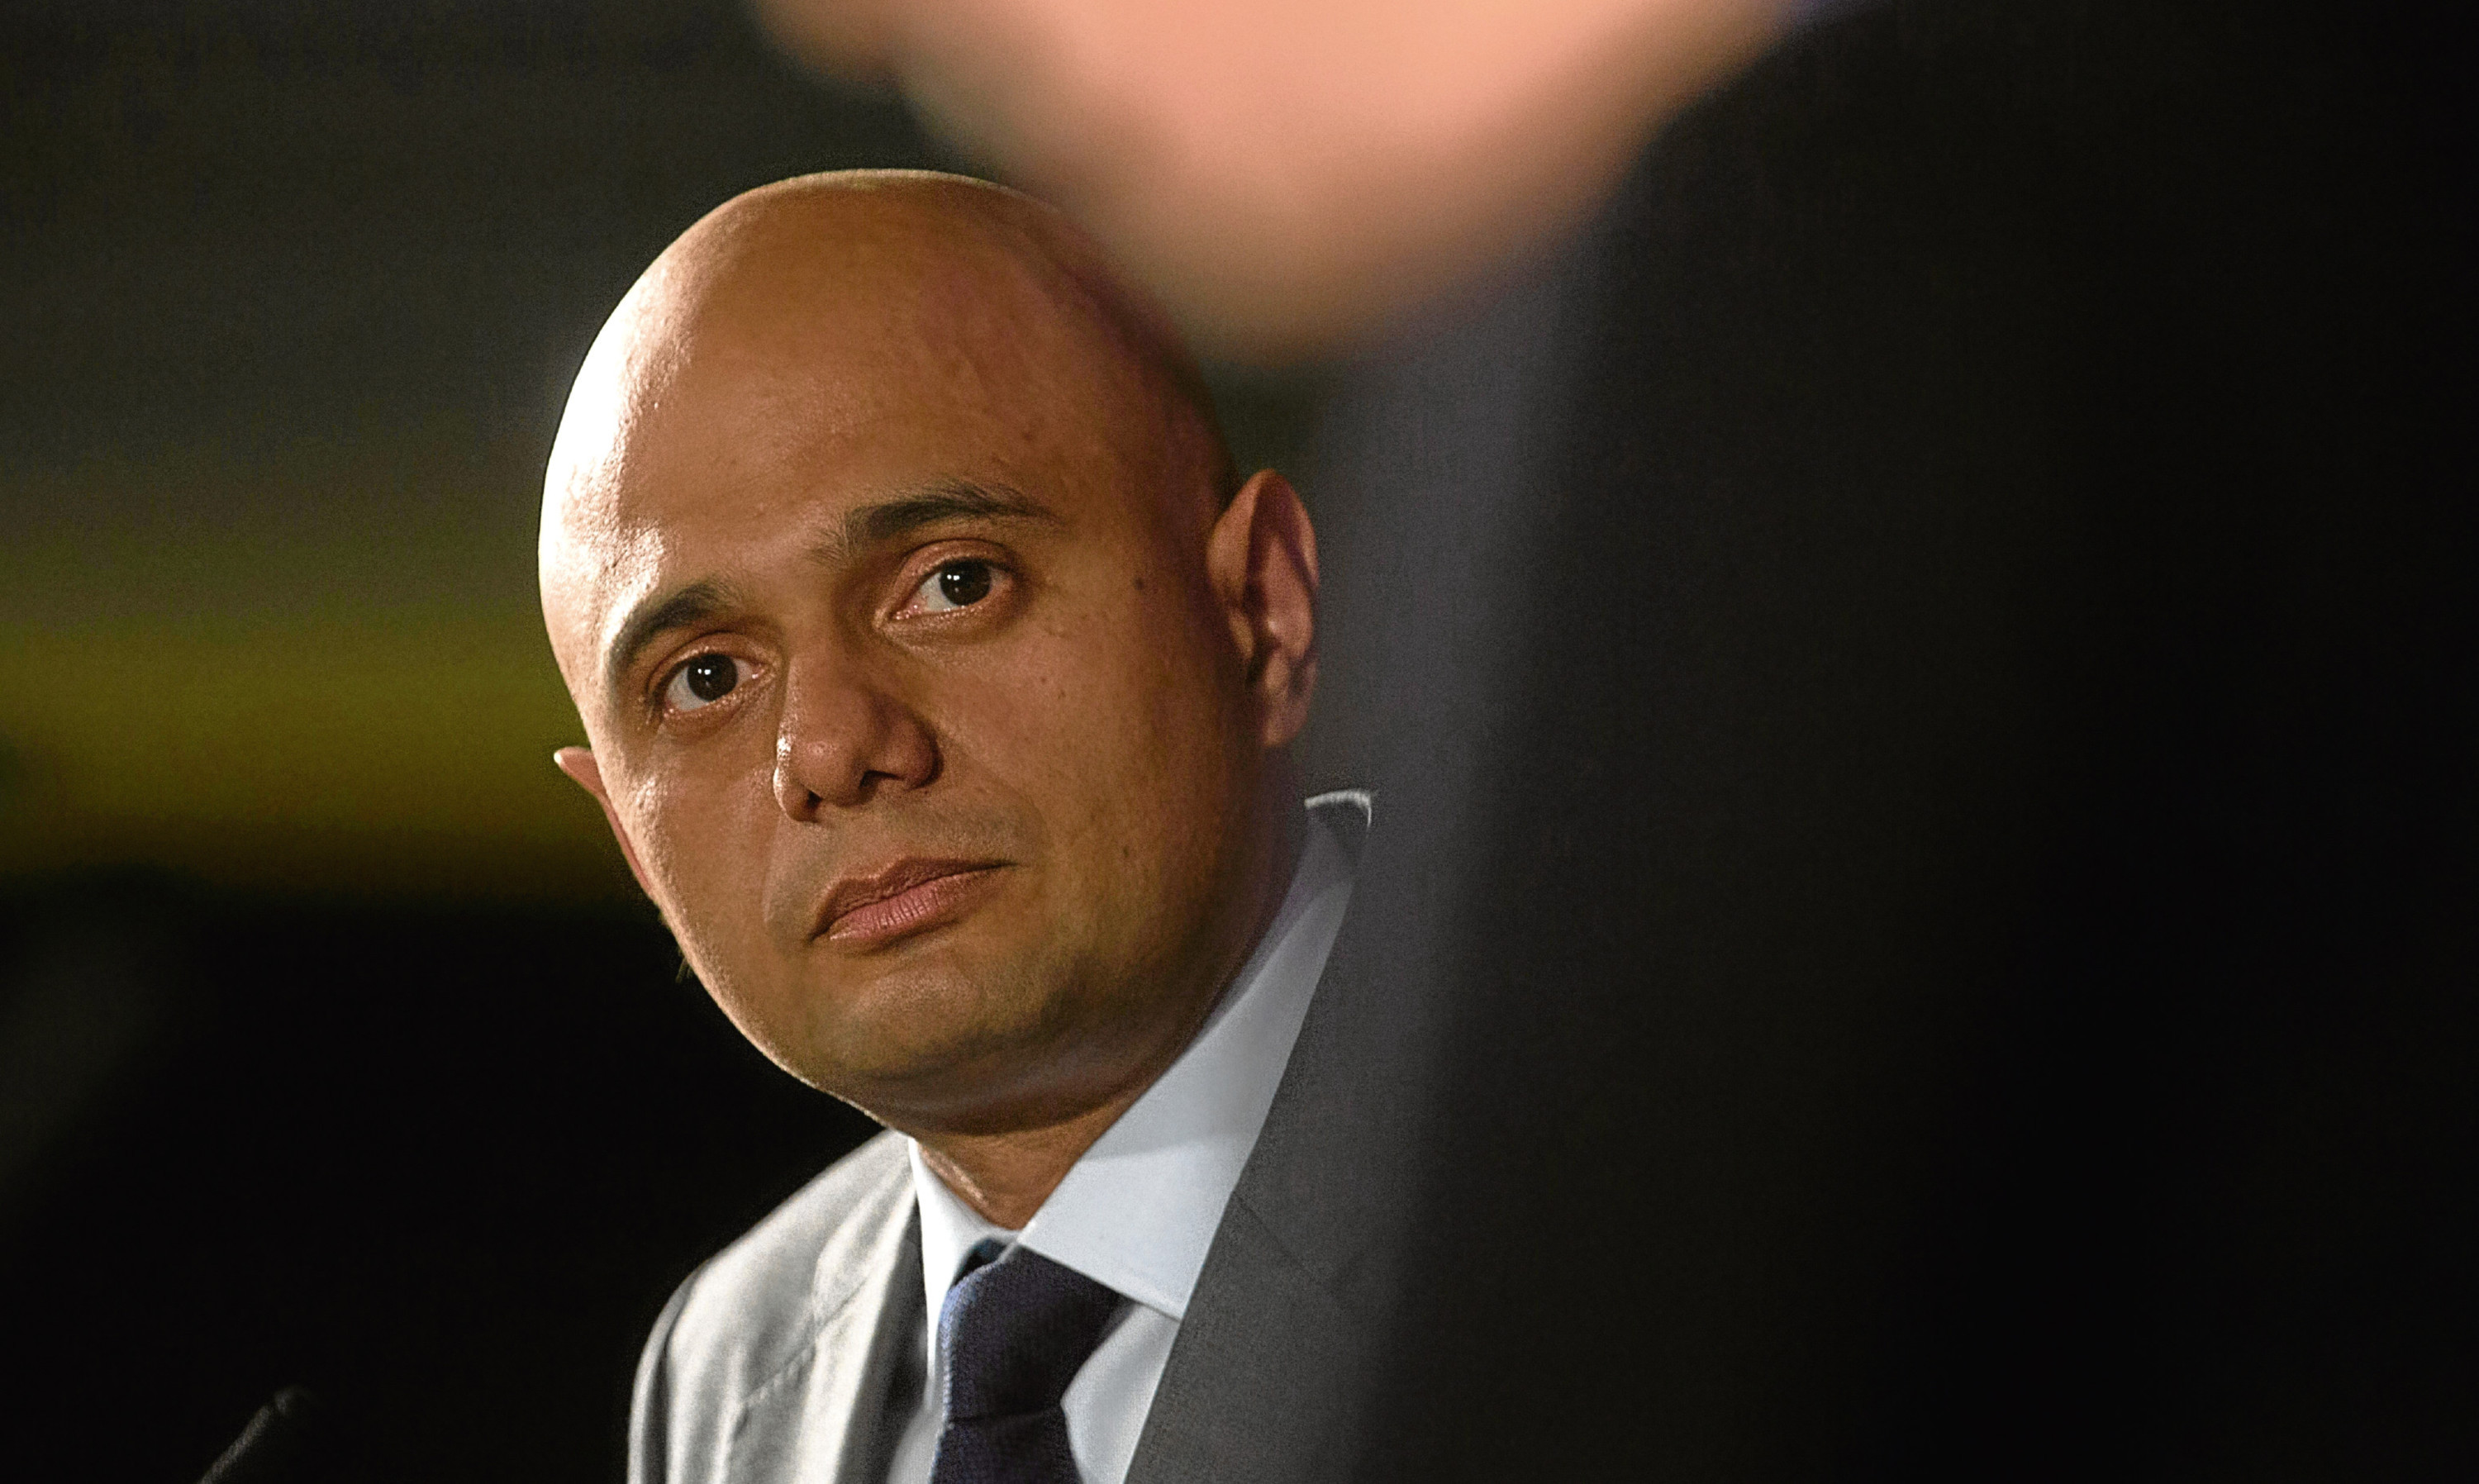 Communities Secretary Sajid Javid has come up with the idea of an oath of allegiance to British vaules for public office holders  an idea Jenny feels should be seriously thought about.